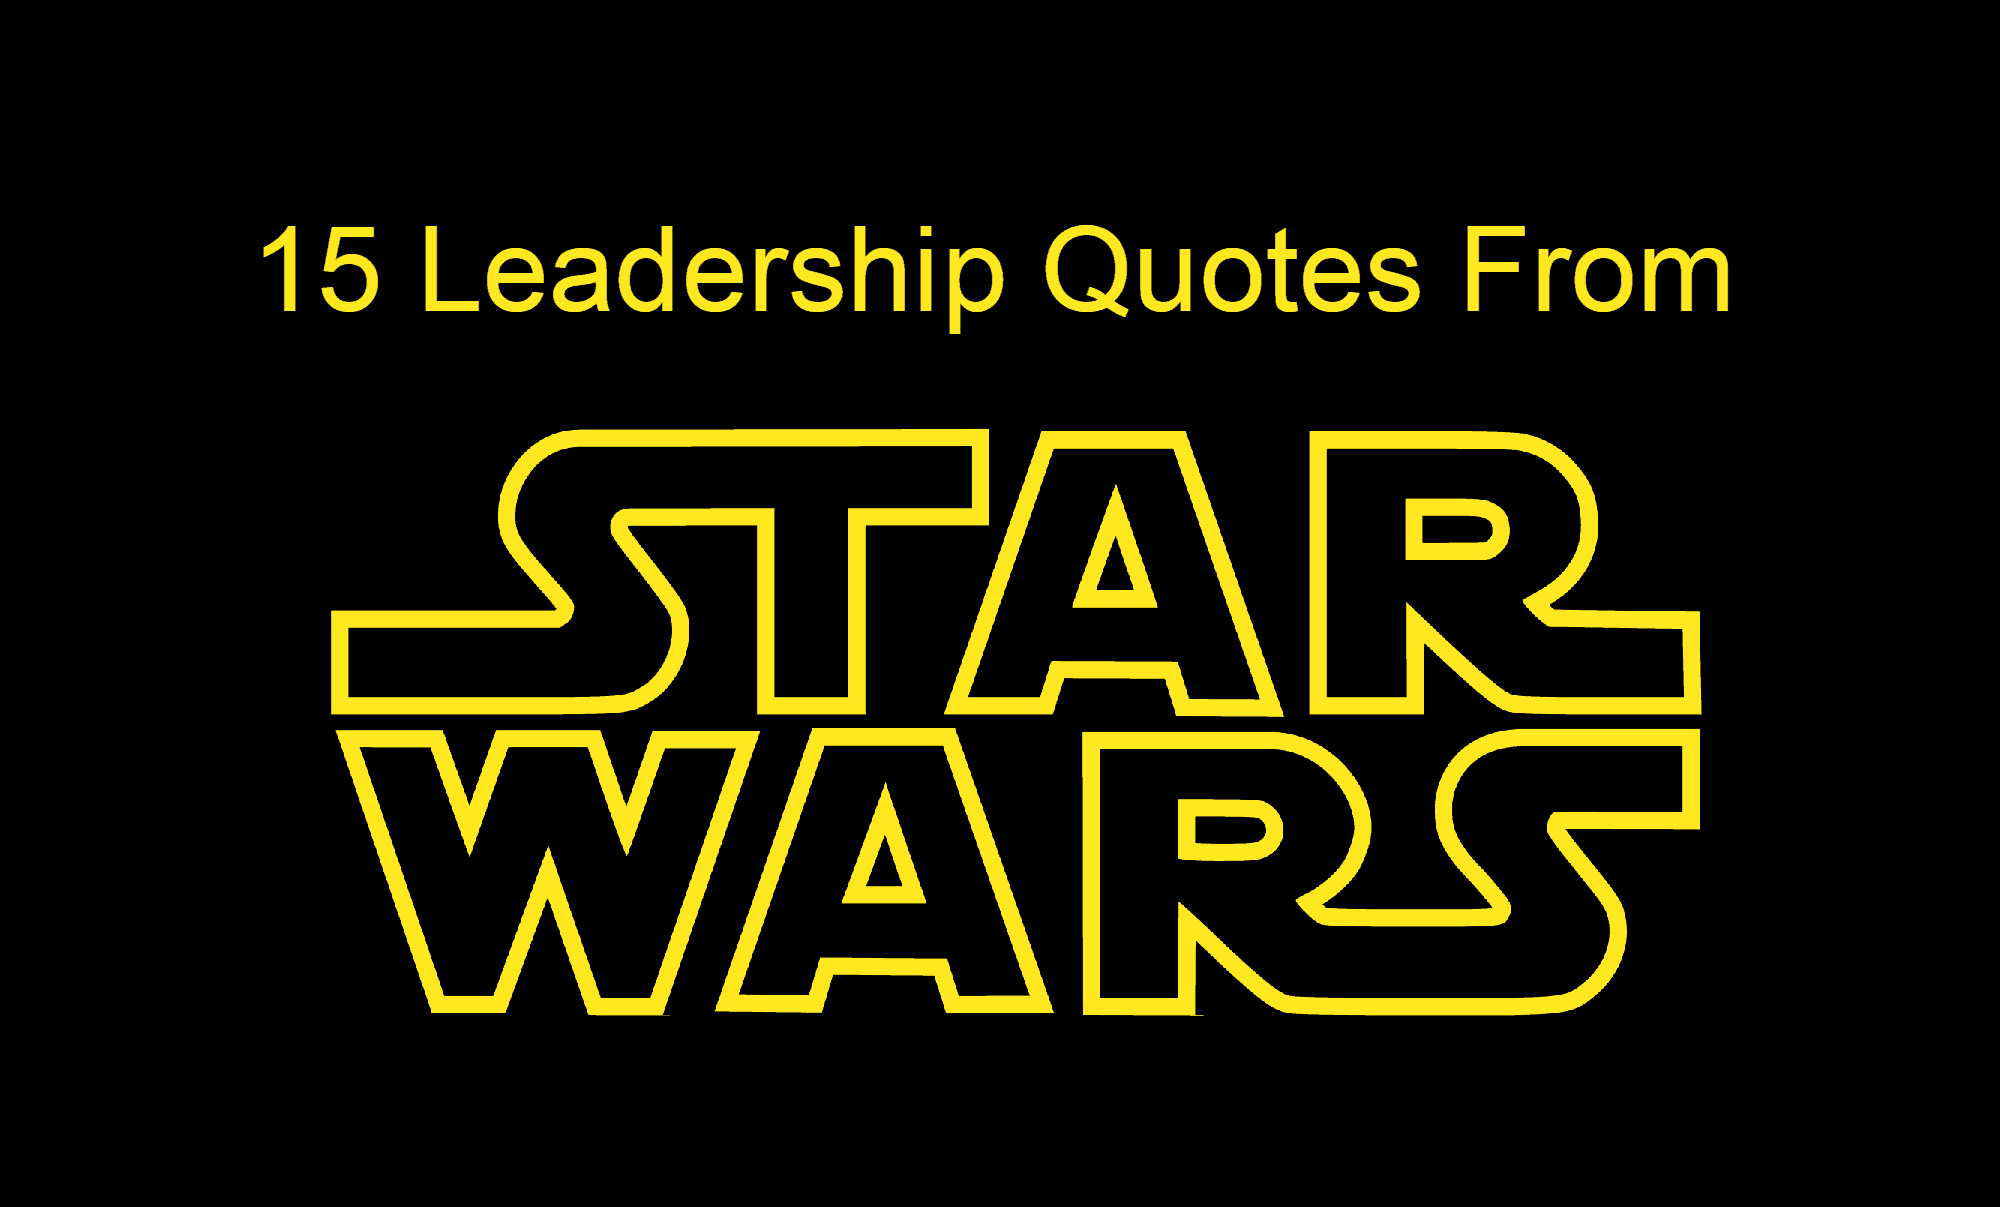 Star Wars leadership quotes